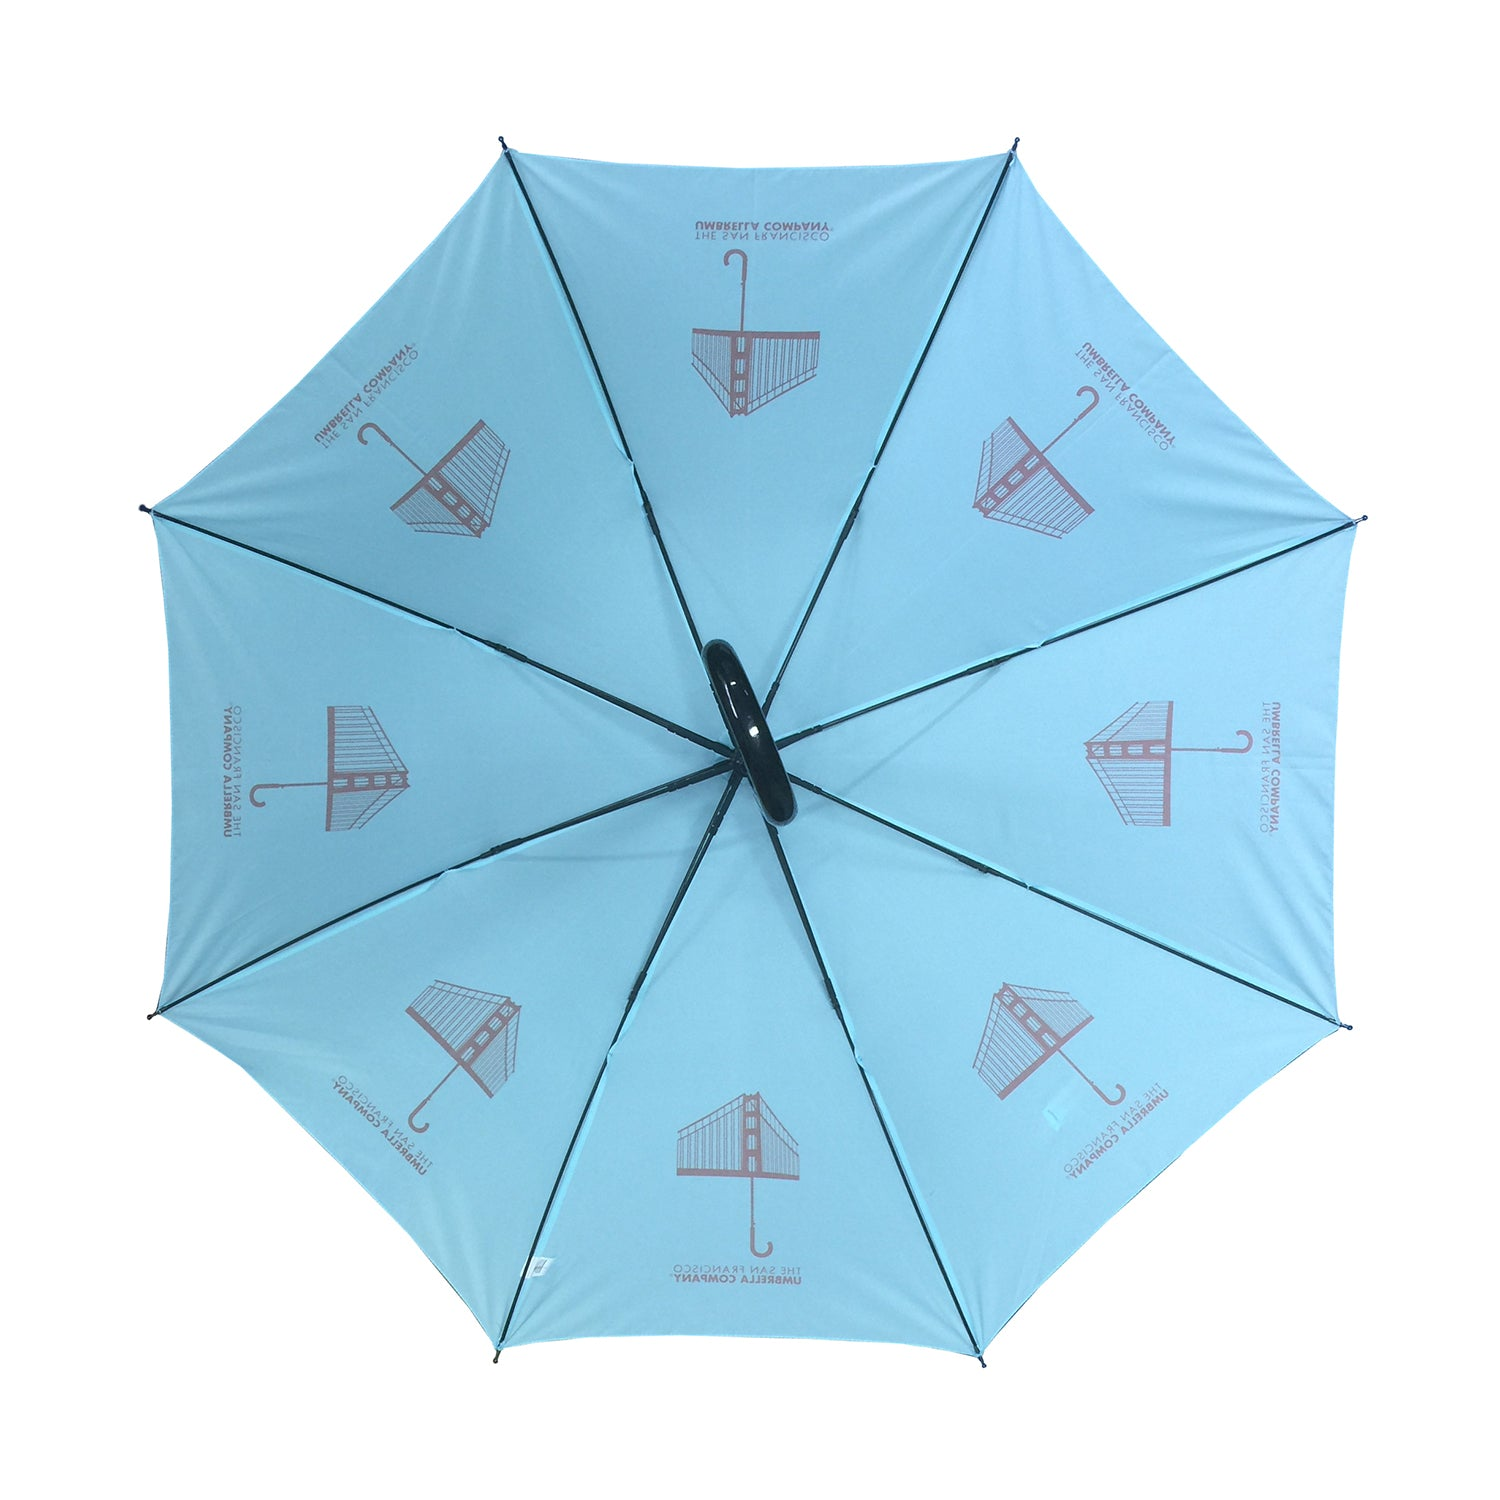 San Francisco Umbrella Company Orange (Golden Gate Bridge) Logo Stick Umbrella  on Island Paradise Blue